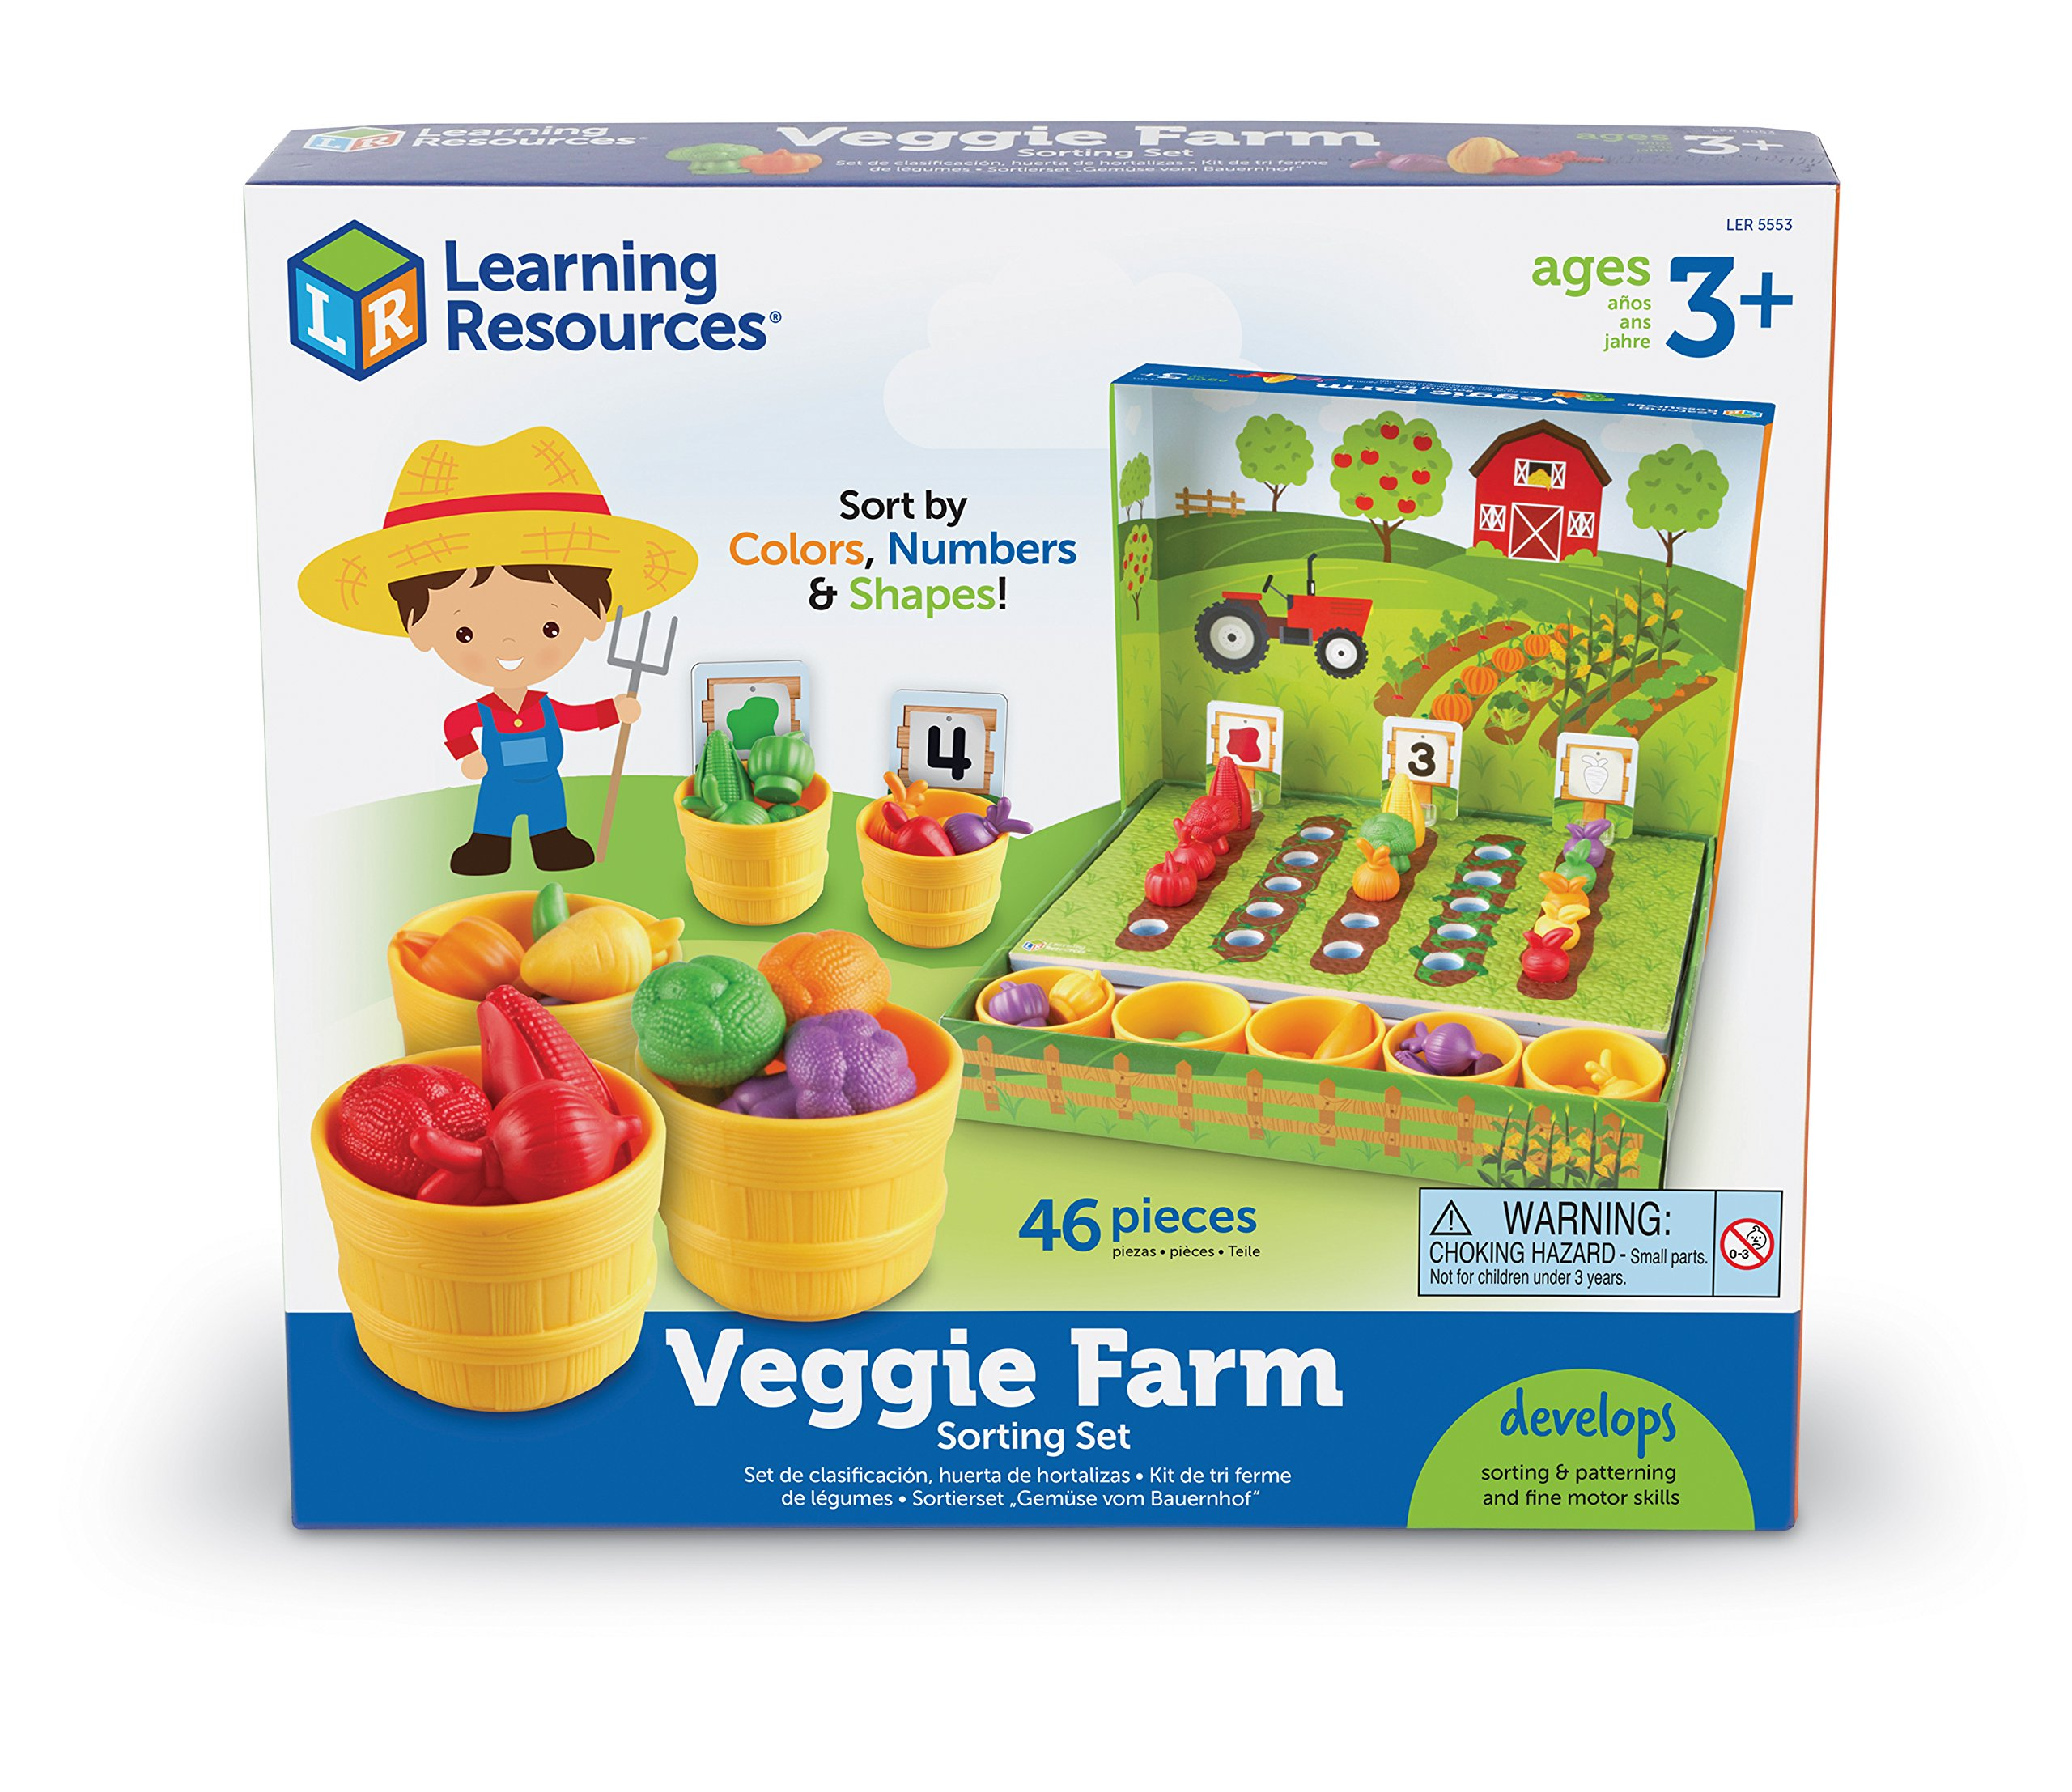 Learning Resources Veggie Farm Sorting Set, 46 Pieces